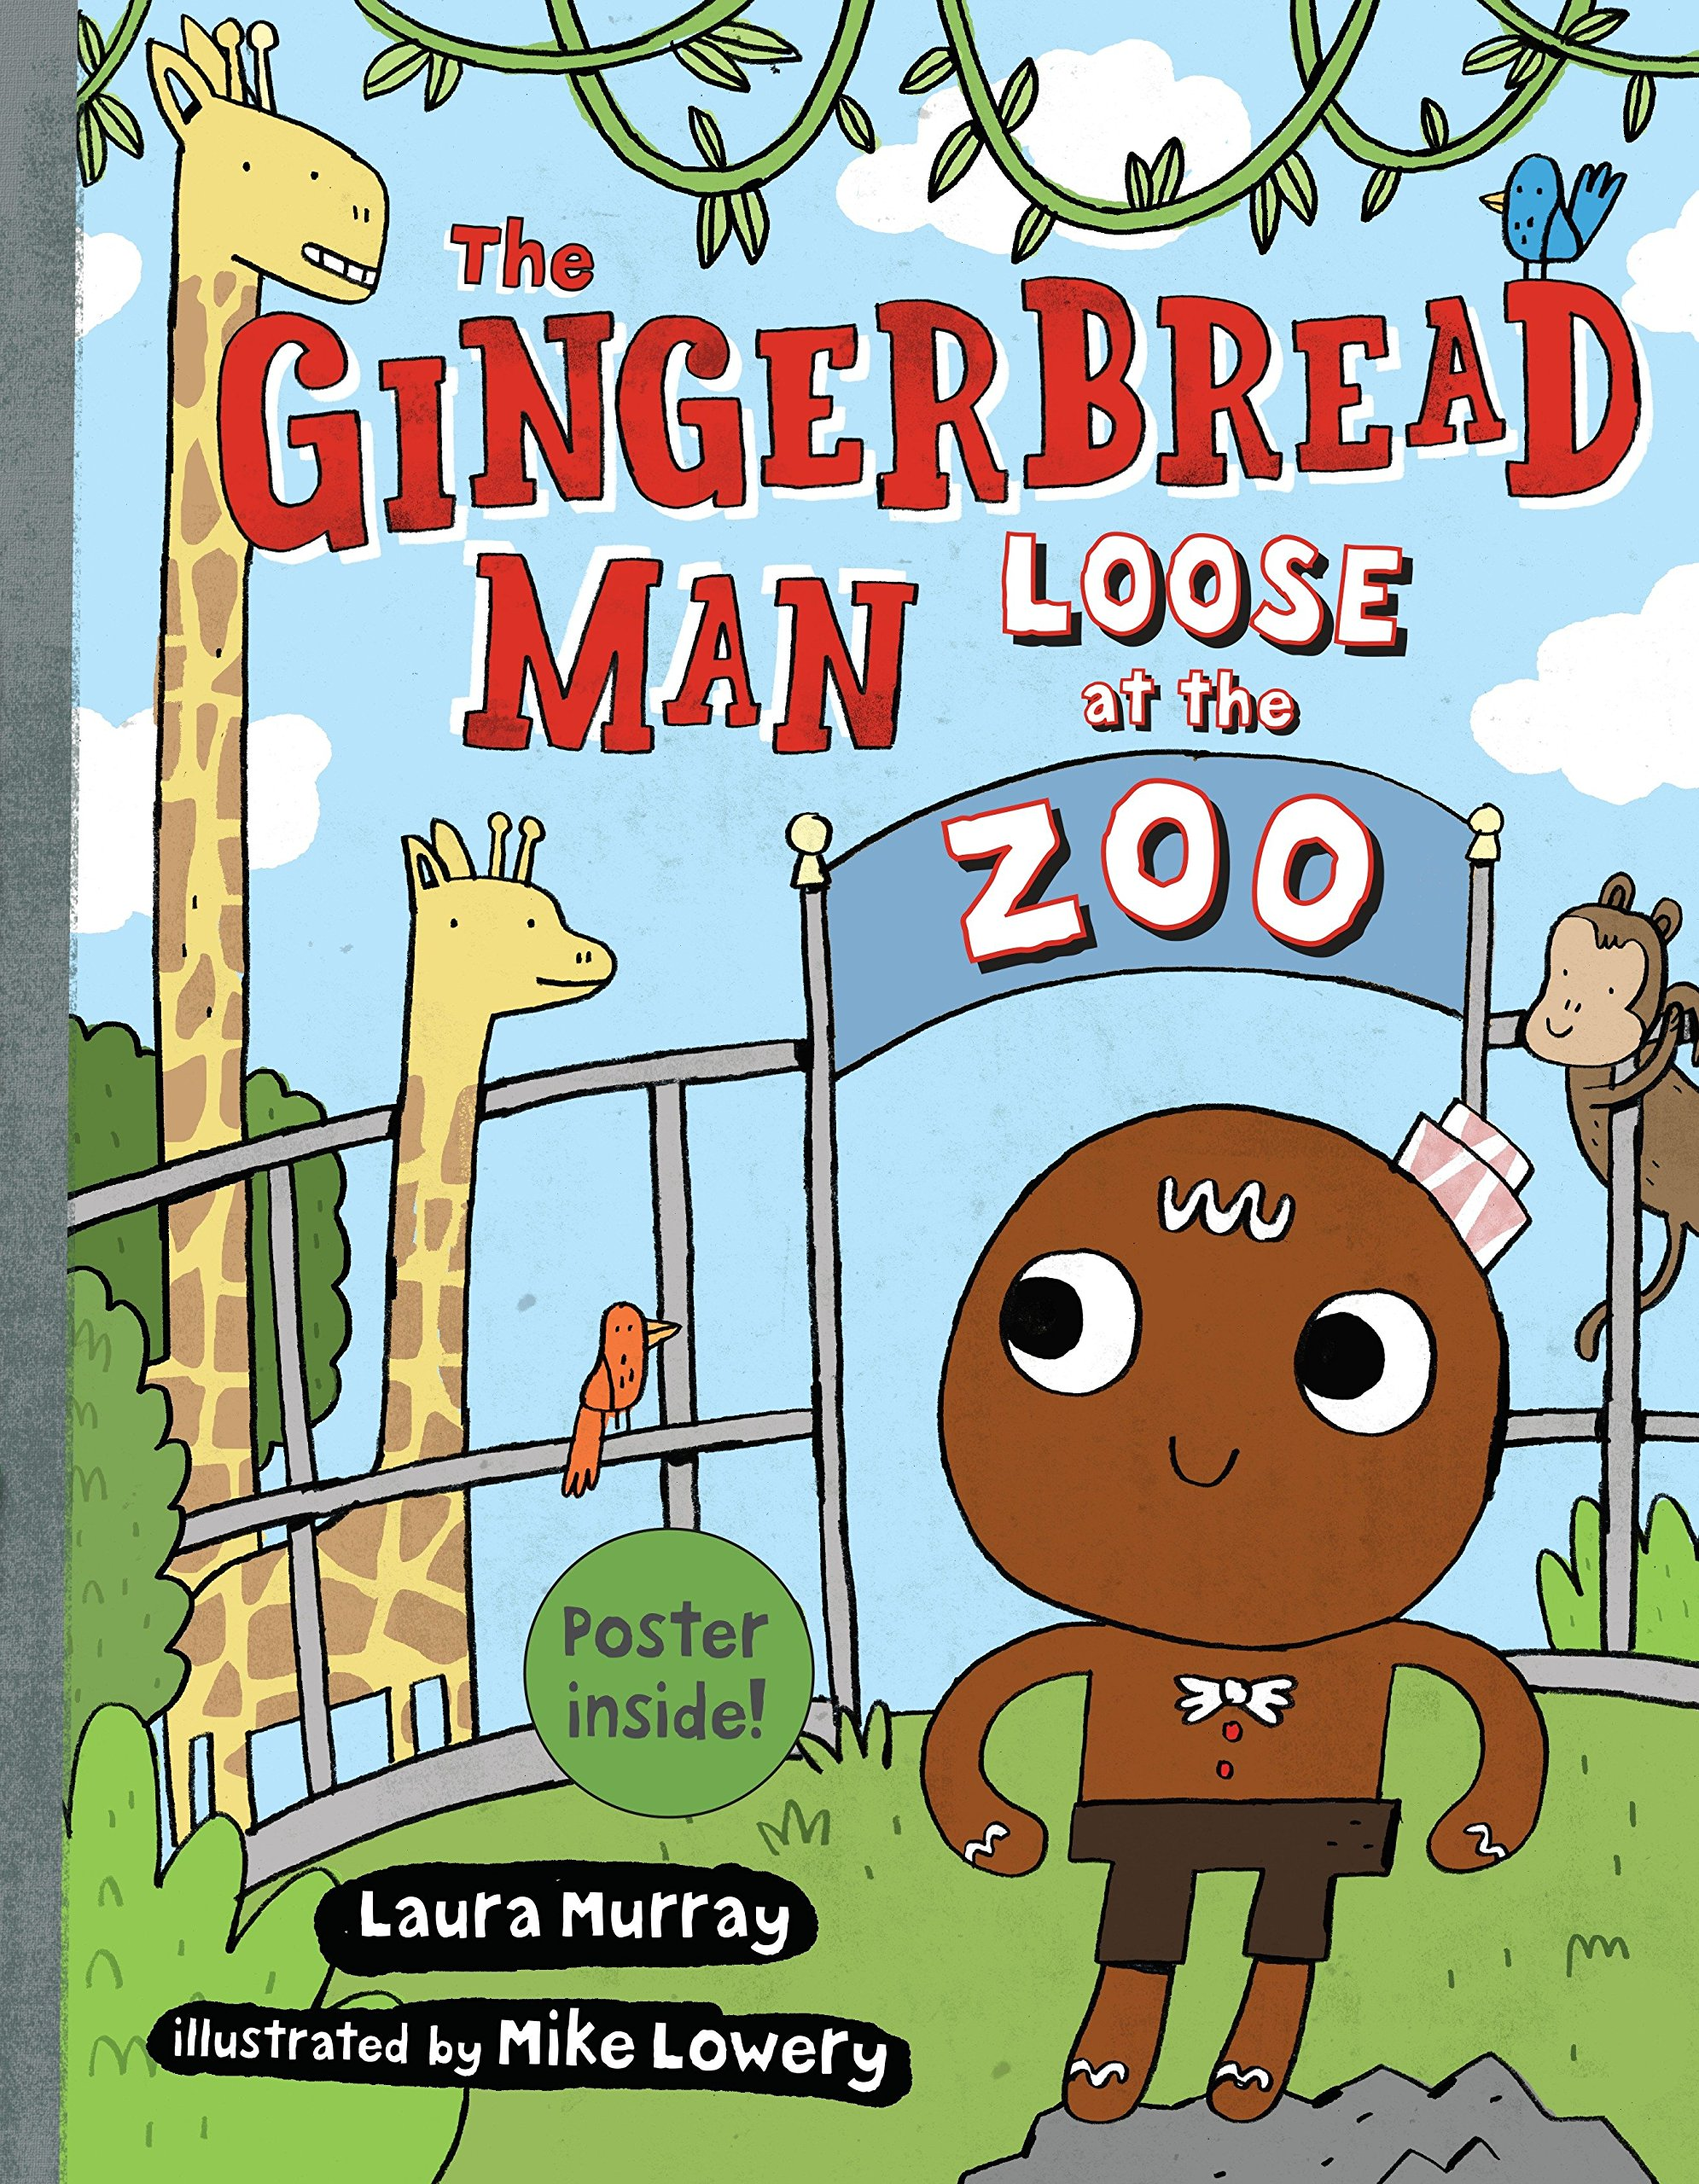 the gingerbread man loose at the zoo.jpg